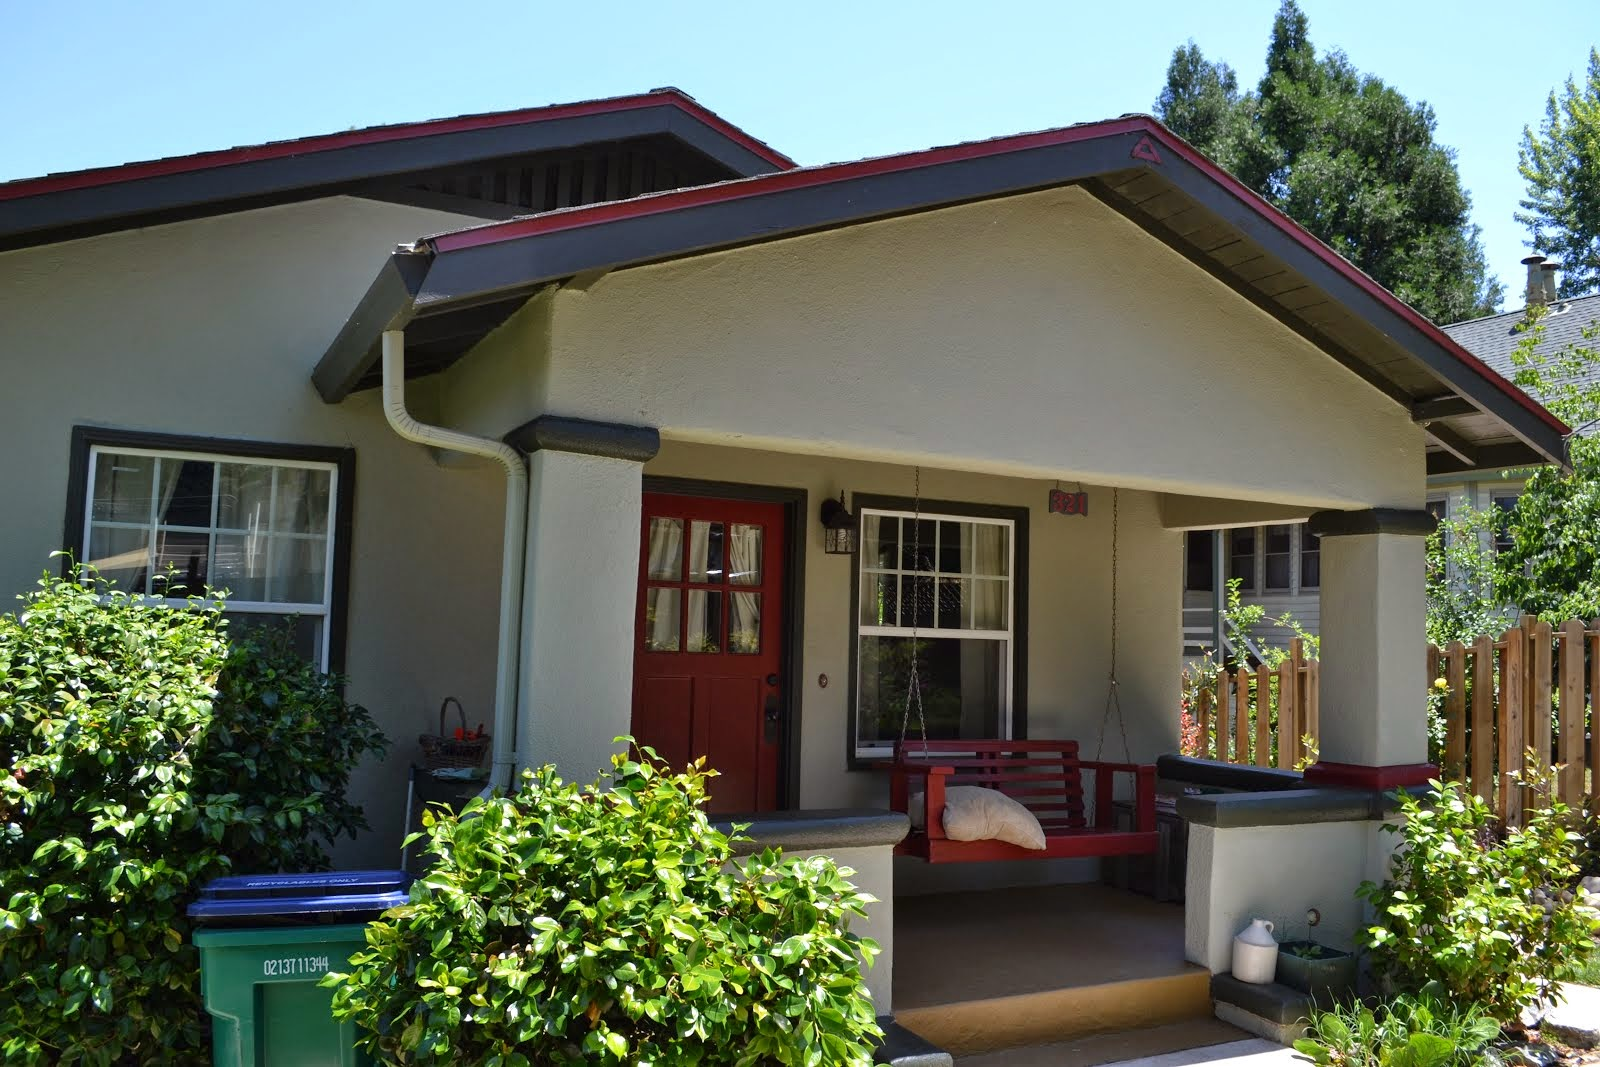 SOLD - DOWNTOWN GRASS VALLEY HOME FOR SALE - PENDING